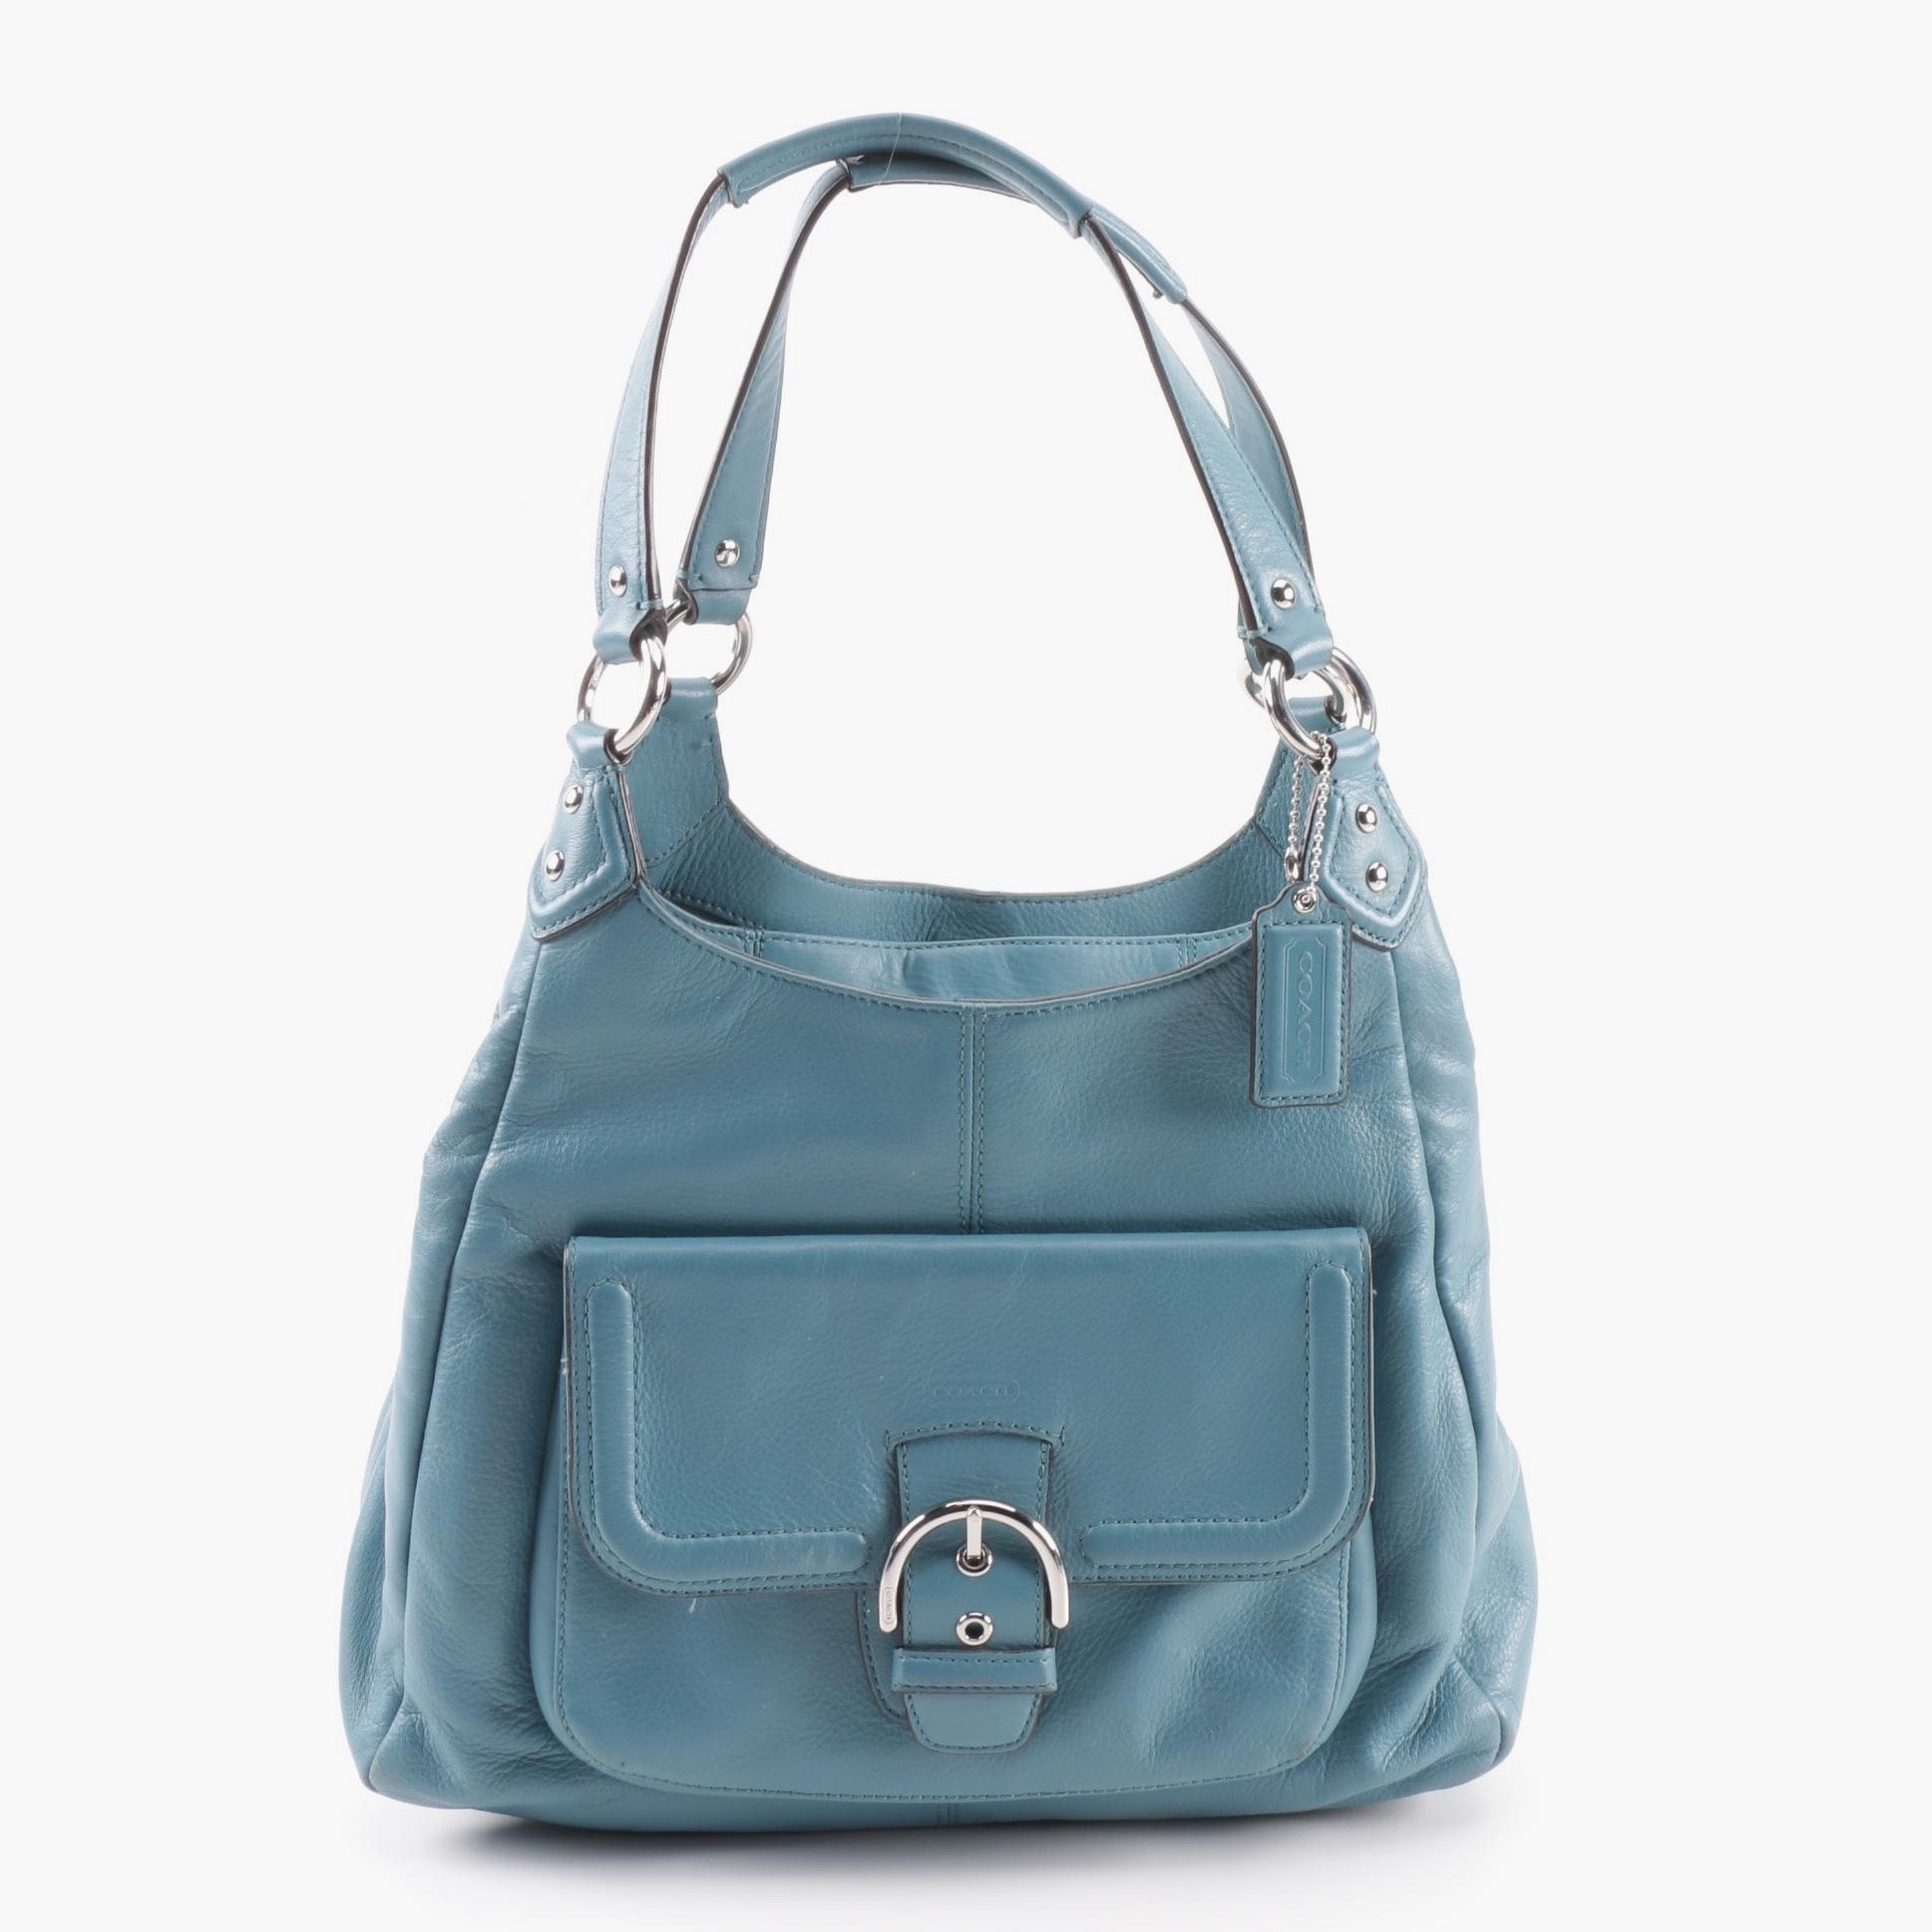 2013 Coach Campbell Teal Leather Hobo Bag